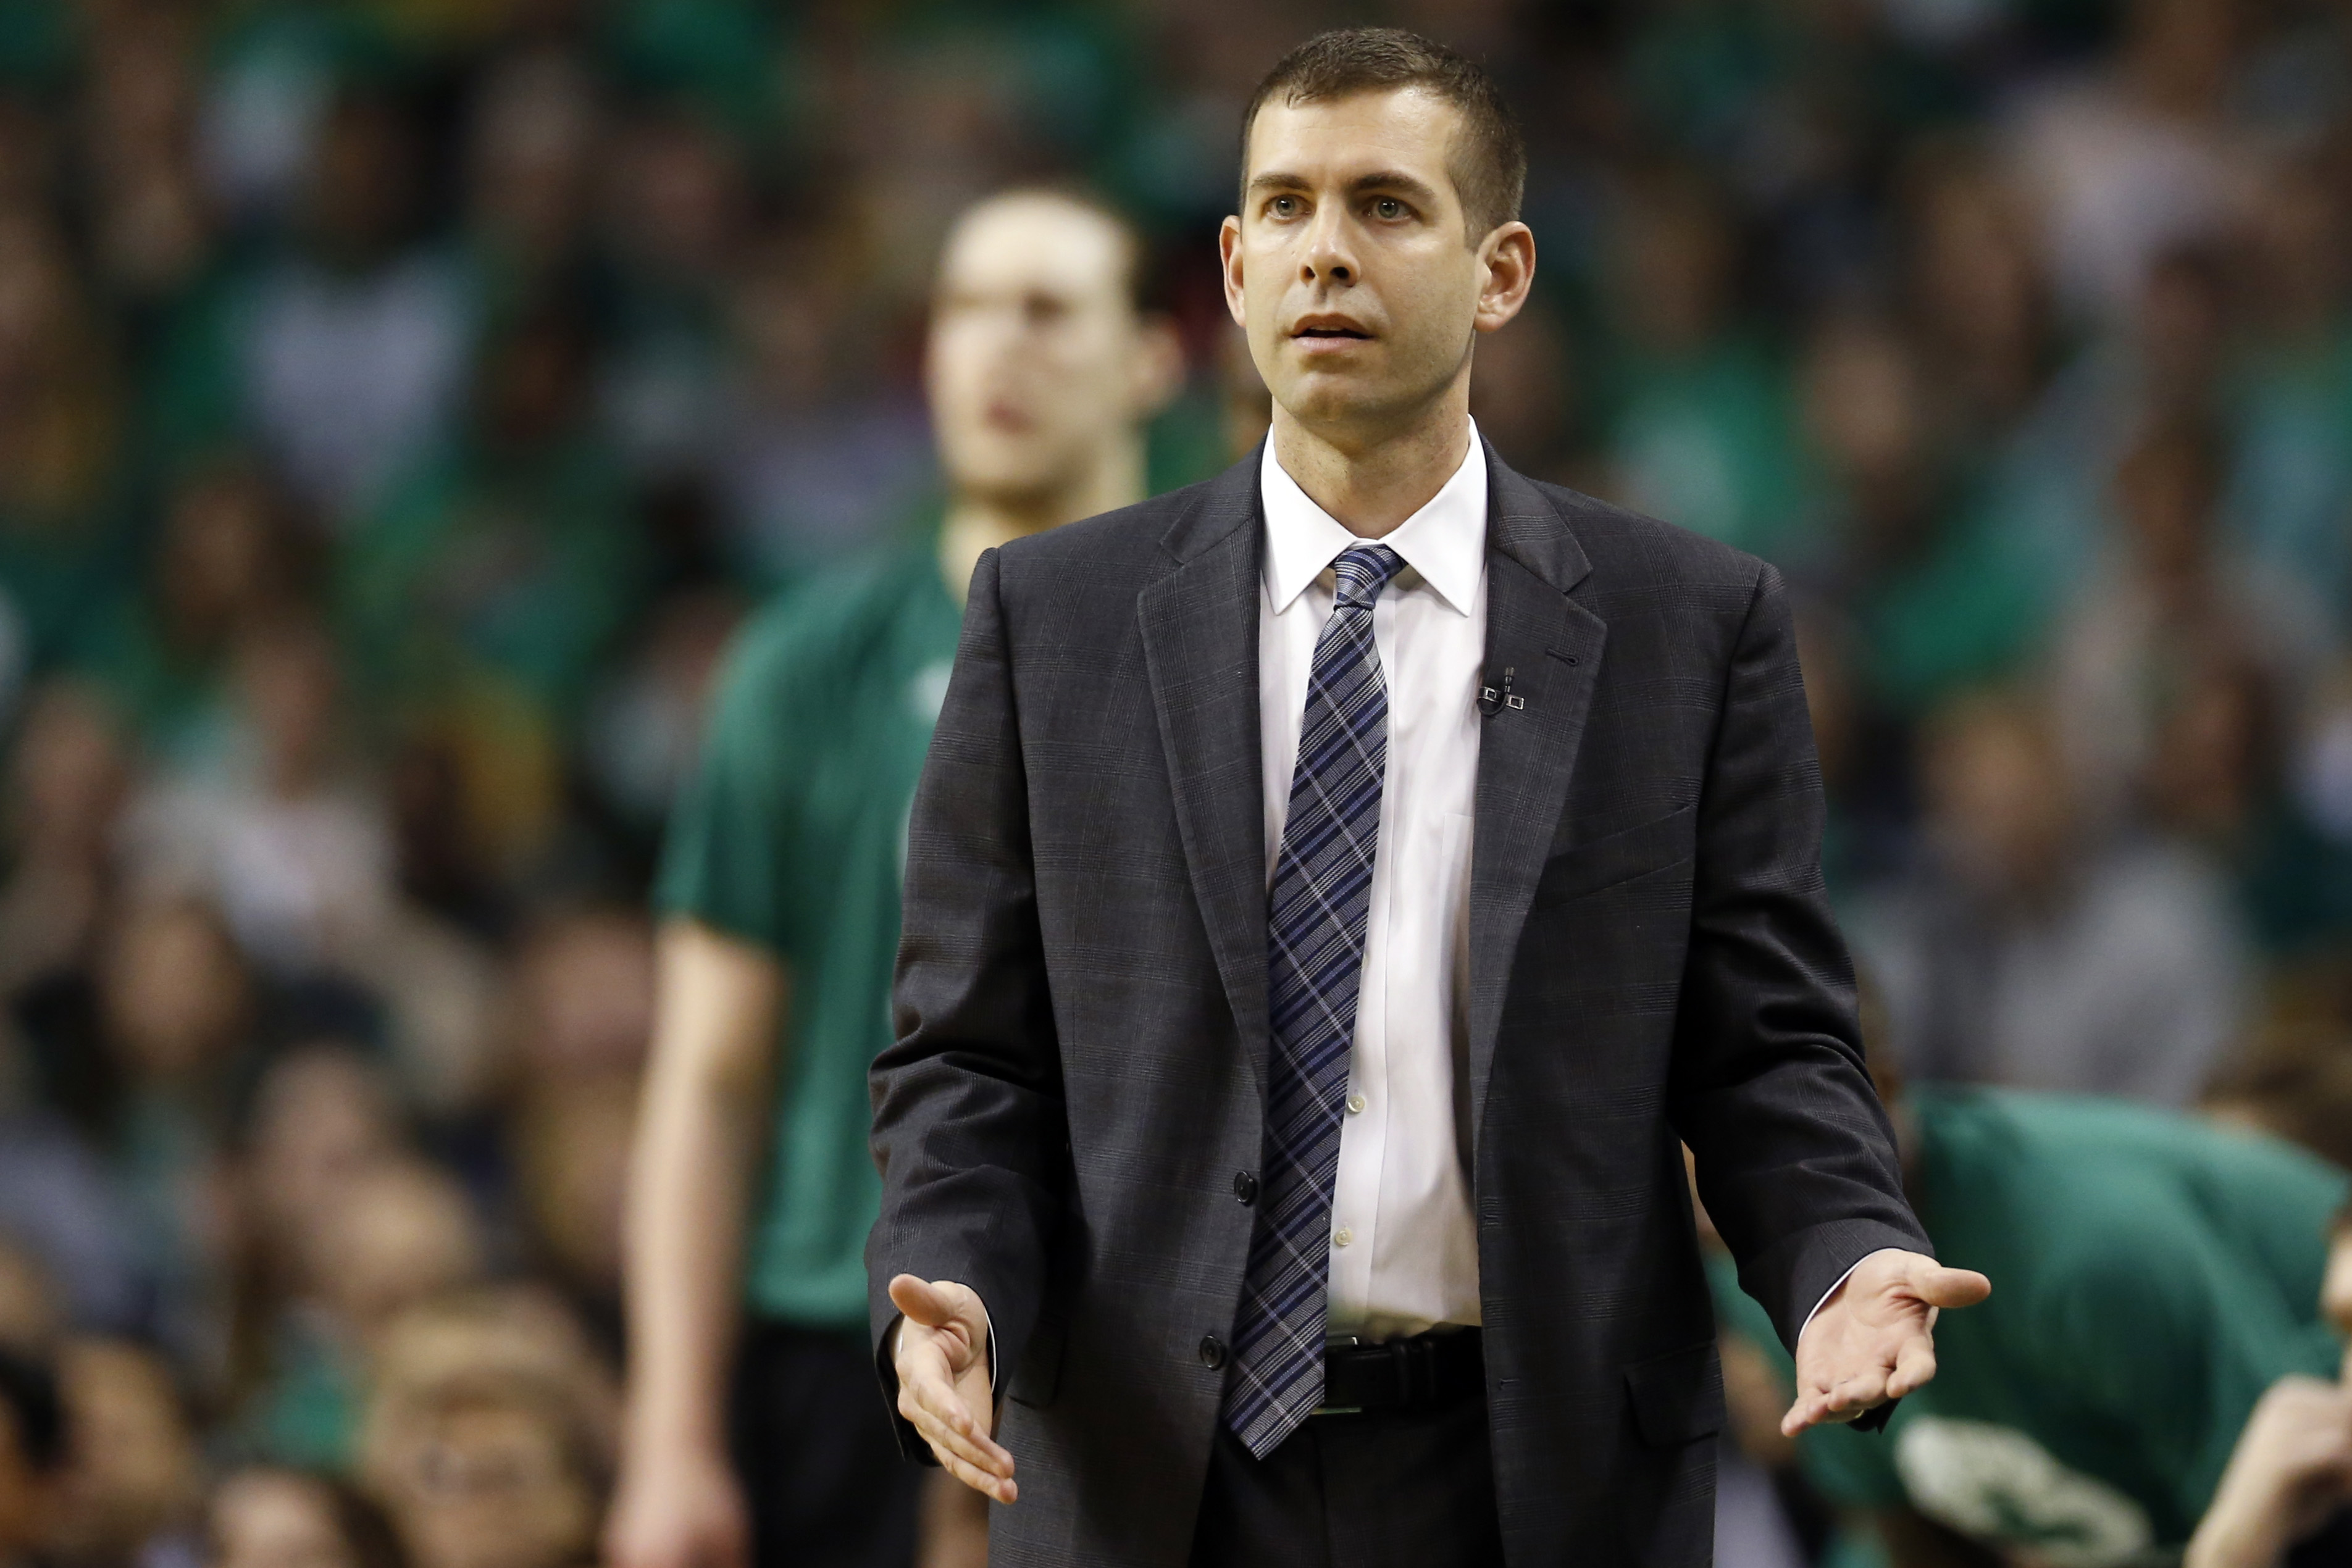 Apr 18, 2017; Boston, MA, USA; Boston Celtics head coach Brad Stevens reacts during the first quarter in game two of the first round of the 2017 NBA Playoffs against the Chicago Bulls at TD Garden. Mandatory Credit: Greg M. Cooper-USA TODAY Sports